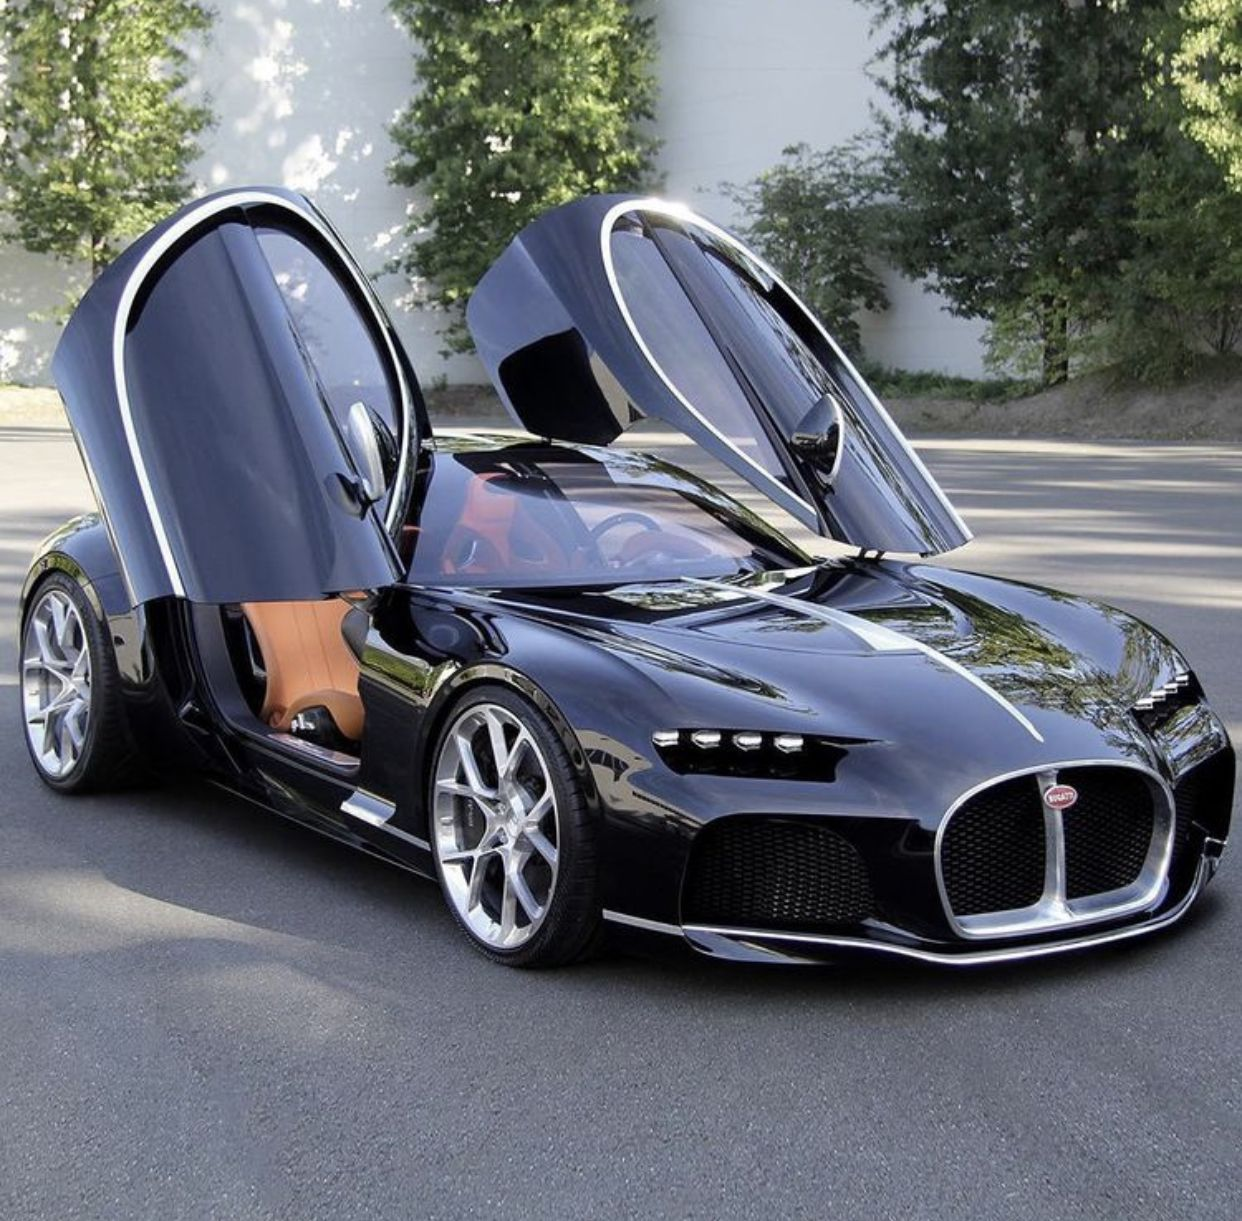 Insane Bugatti In 2020 Super Car Bugatti Cars Bugatti Veyron Best Luxury Cars